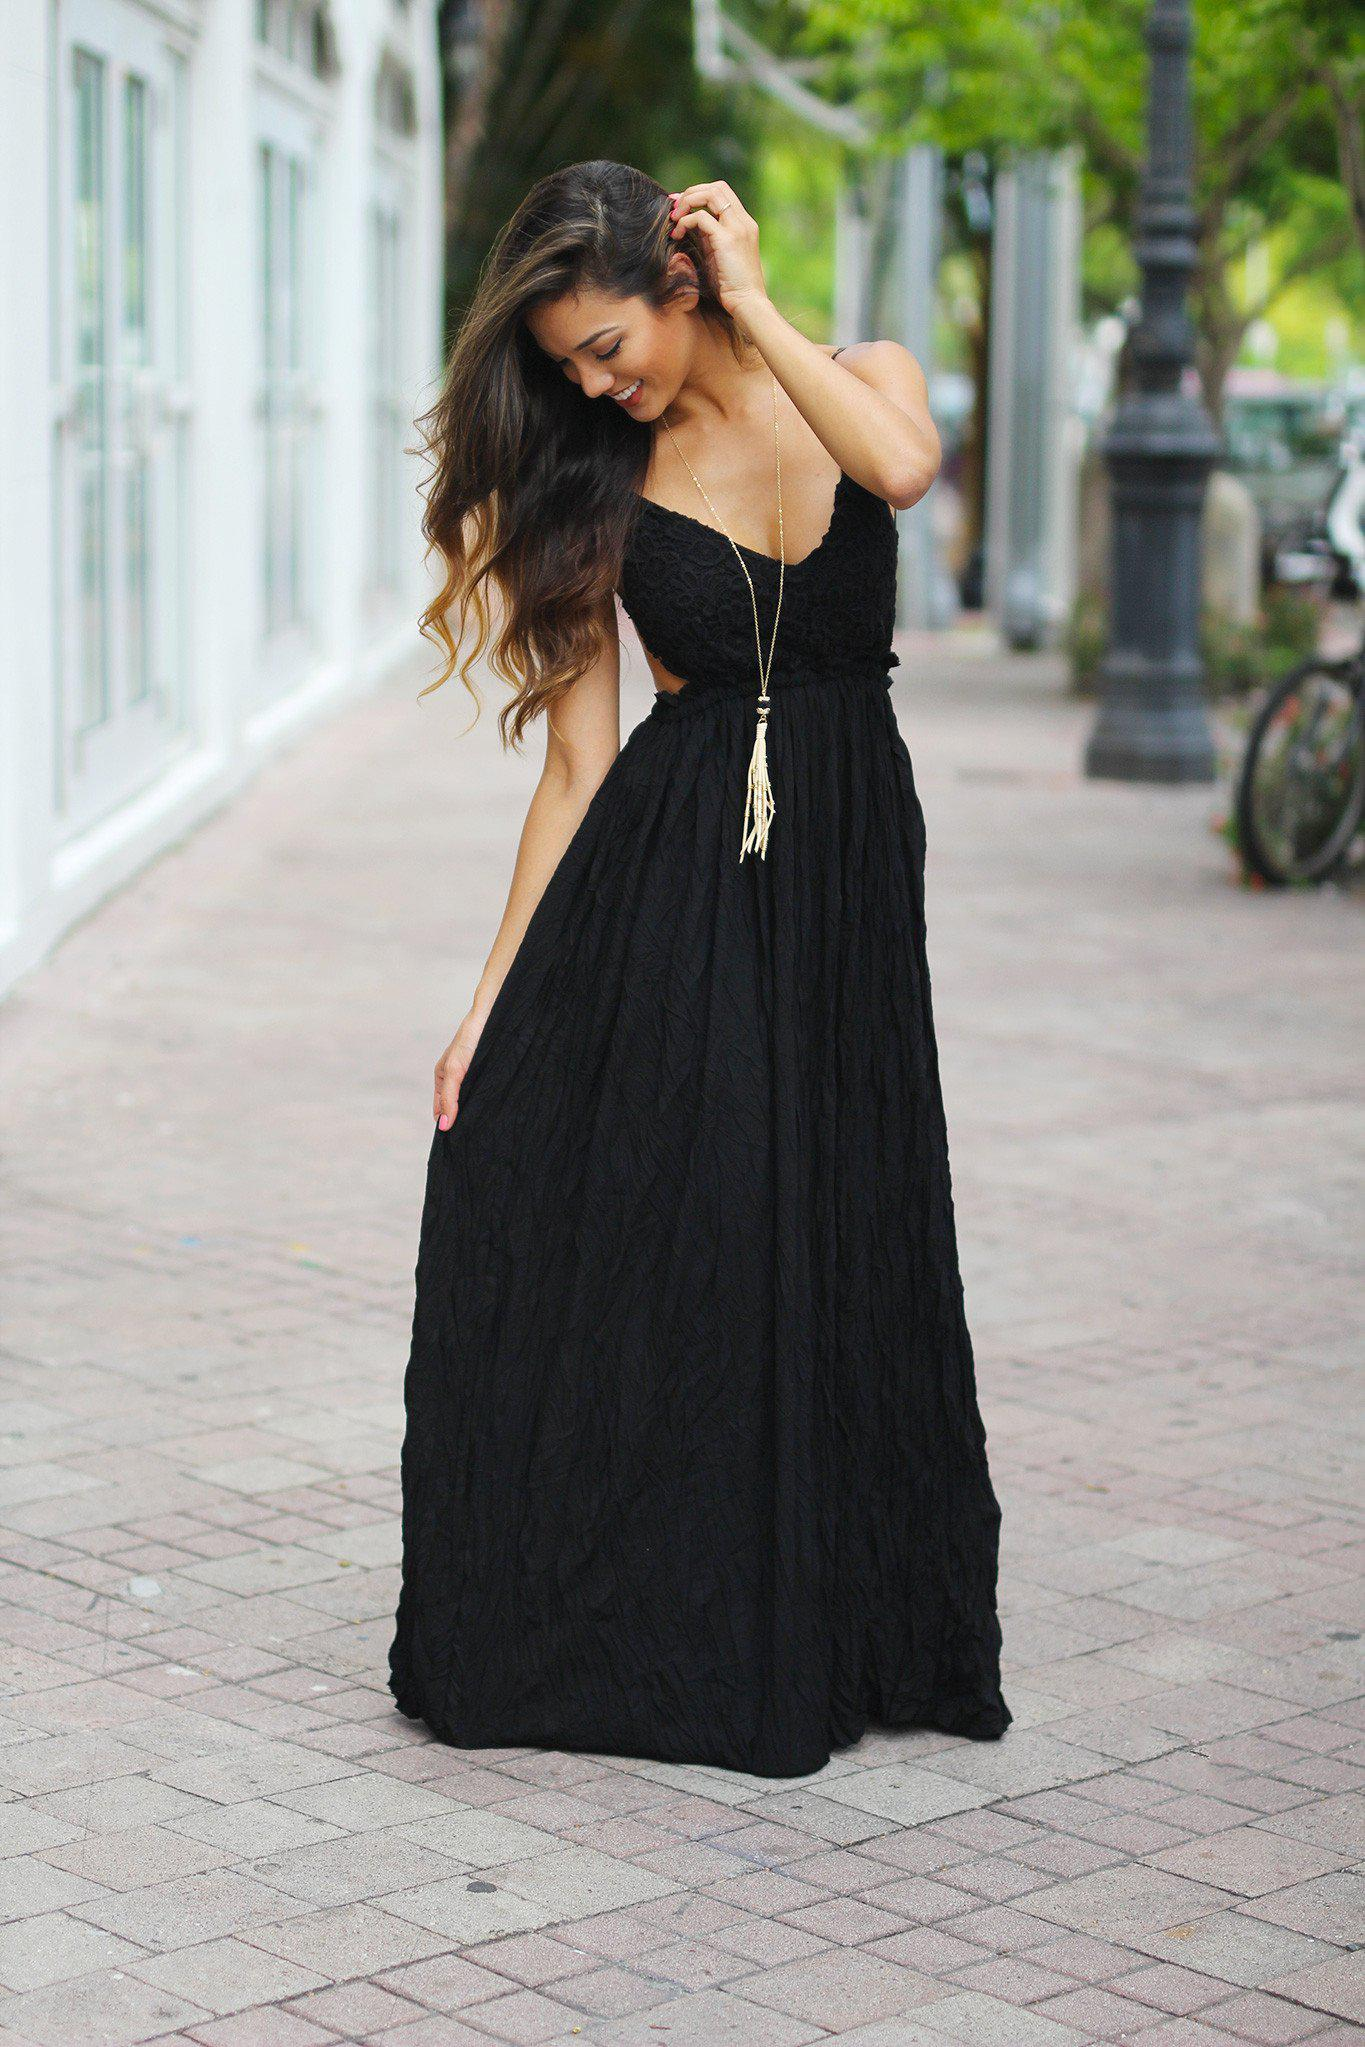 Black Lace Maxi Dress with Open Back | Evening Gown – Saved by the ...